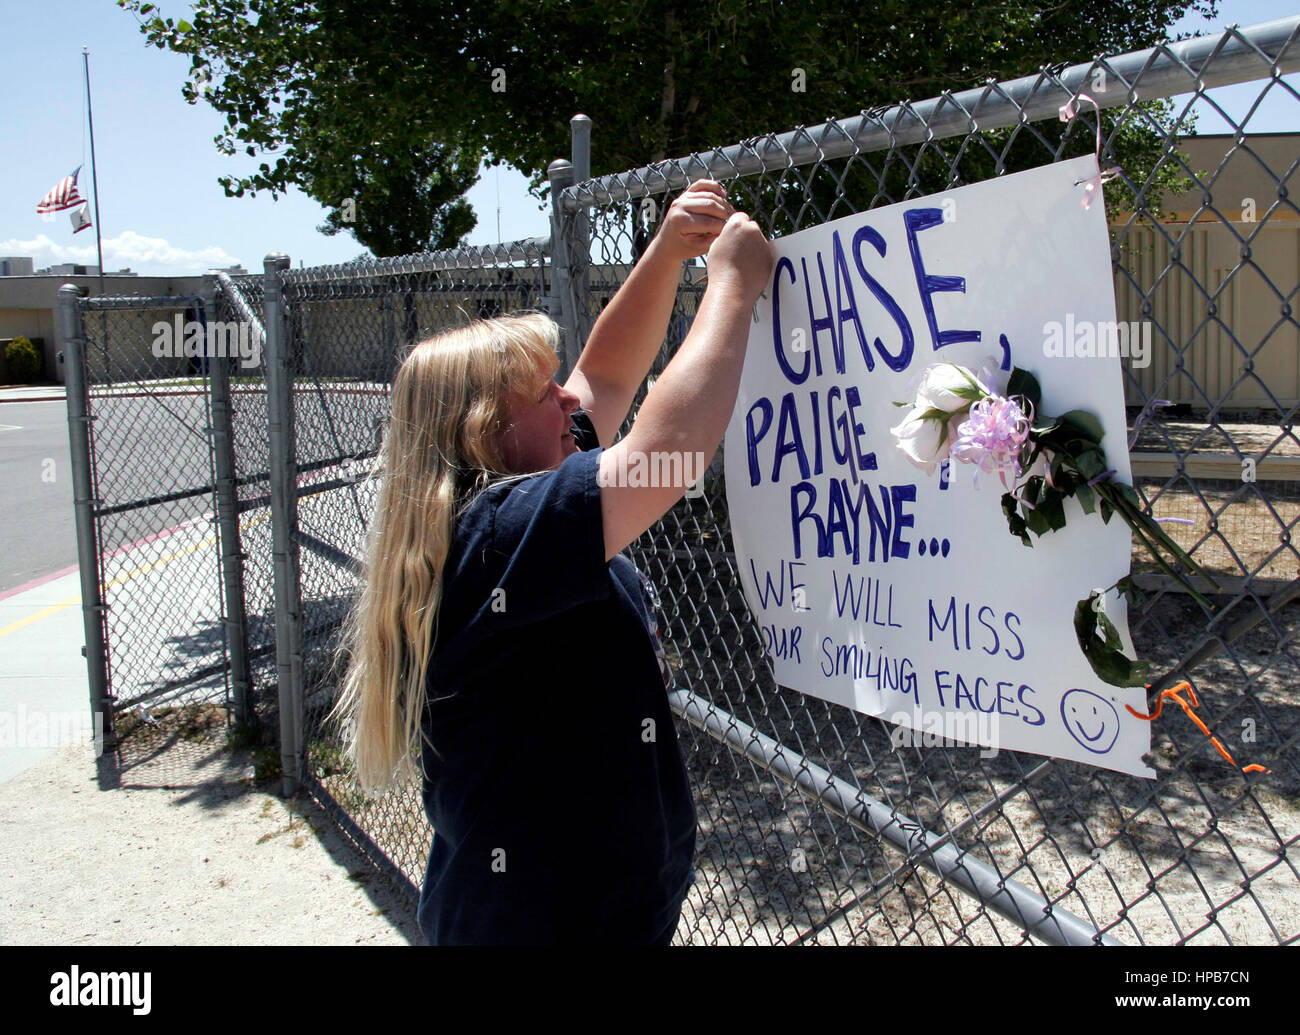 Sharron Russo affixes a sign memorializing Chase, Paige and Rayne McGowan, to a fence in front of the Hamilton Elementary - Stock Image